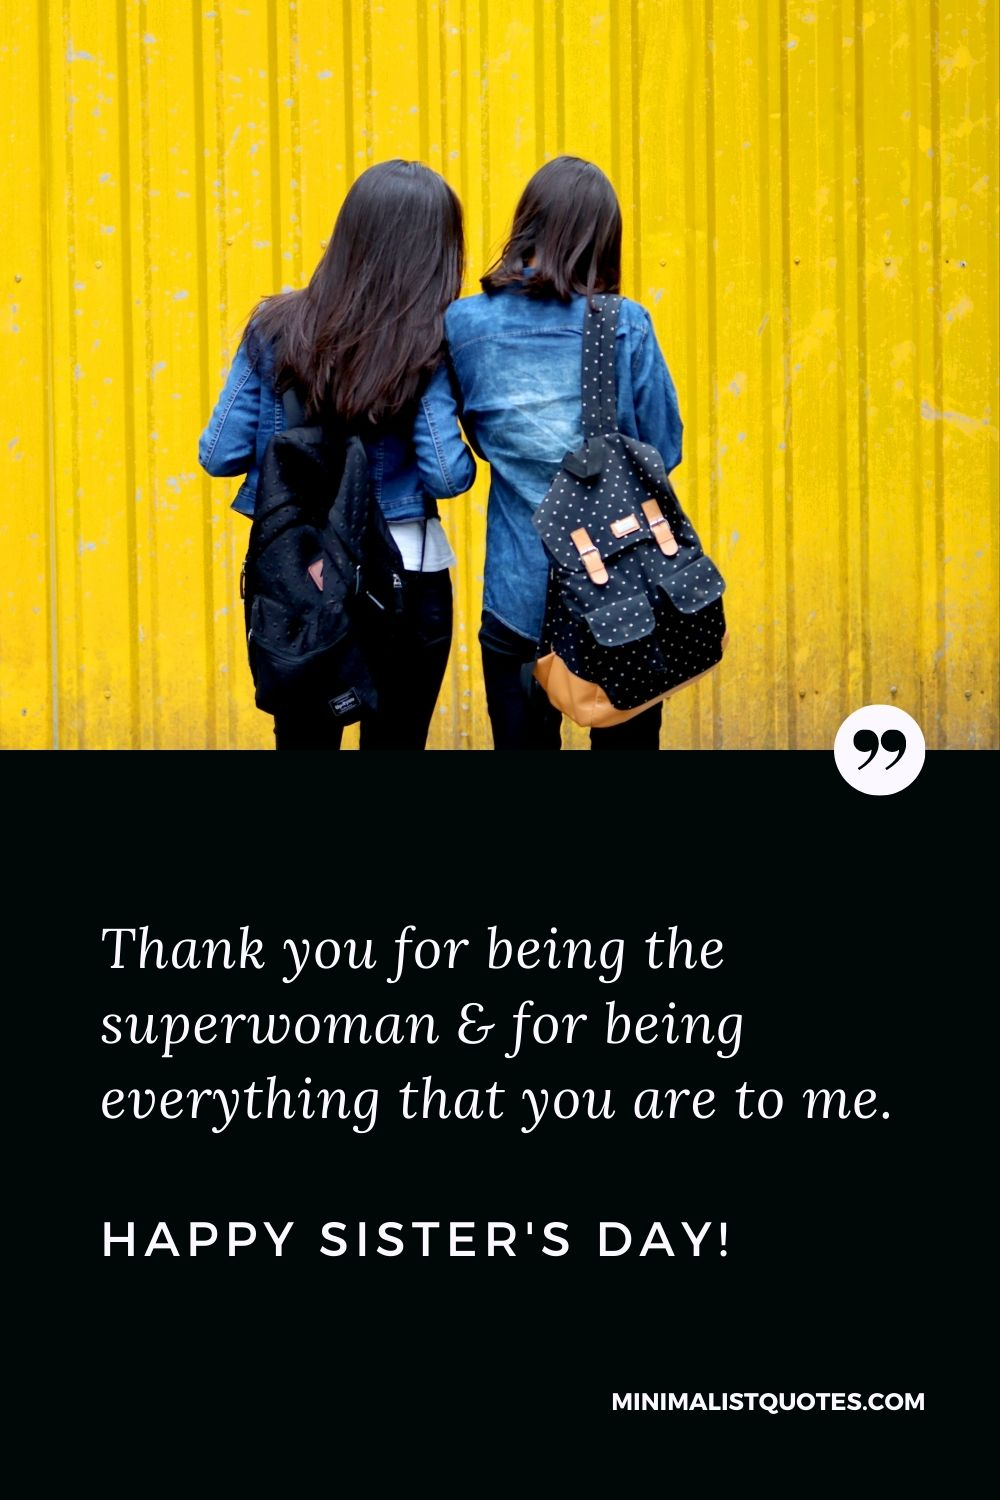 Sister's Day Quote, Wish & Message With Image: Thank you for being the superwoman &for being everything that you are to me. Happy Sister's Day!